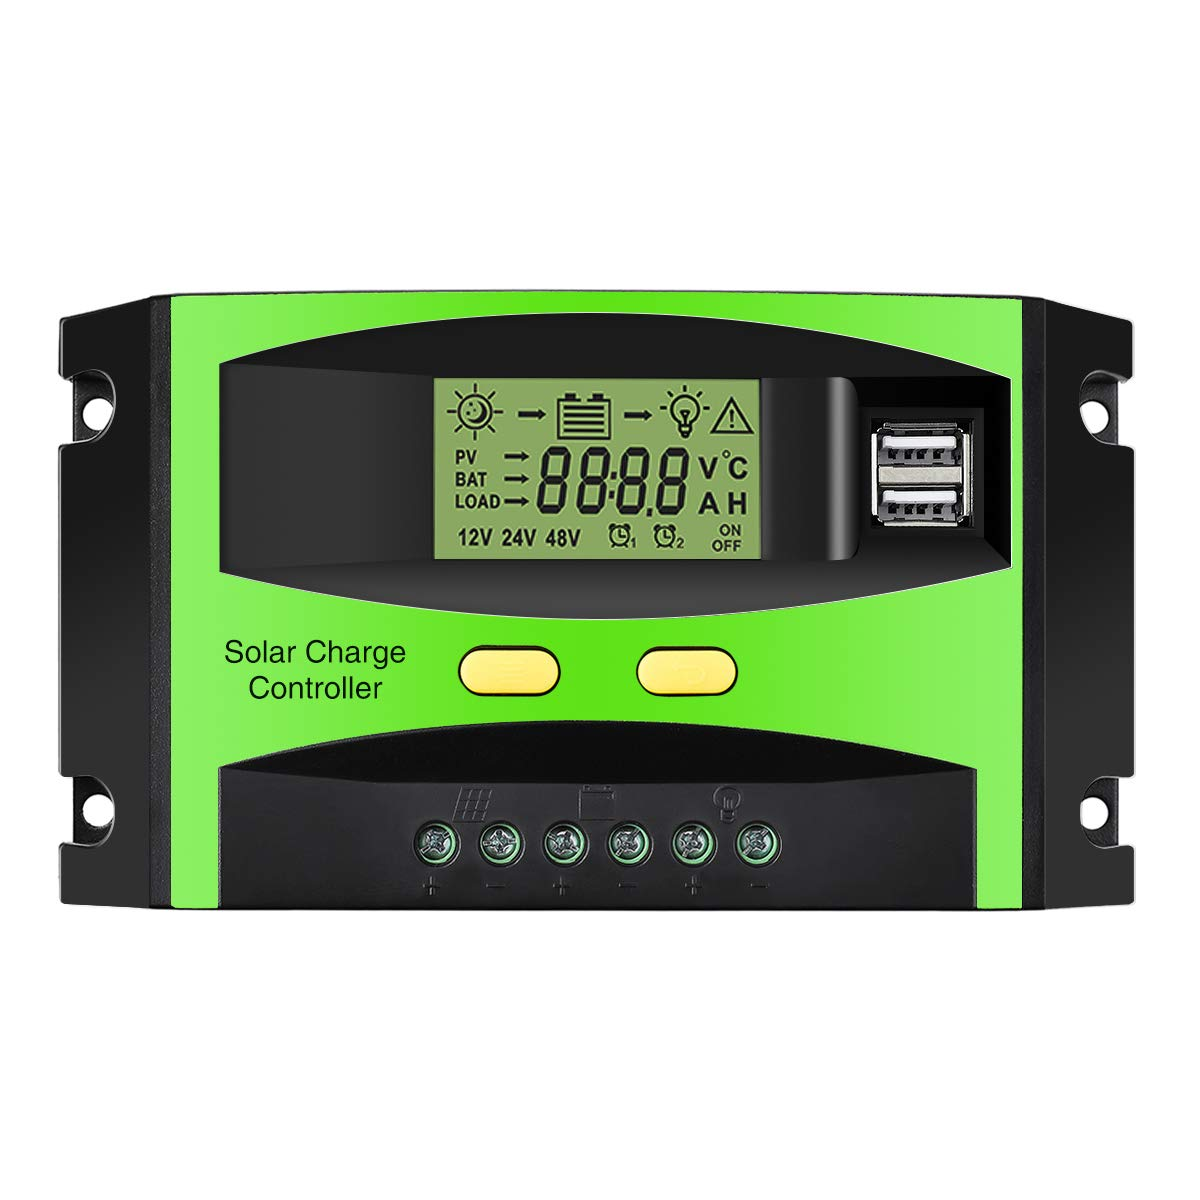 MOHOO Solar Charge Regulator, 12Volt/24Volt Solar Panel Intelligent Regulator with USB Port and PWM LCD Display, 30Amps Solar Charge Controller (Upgraded)